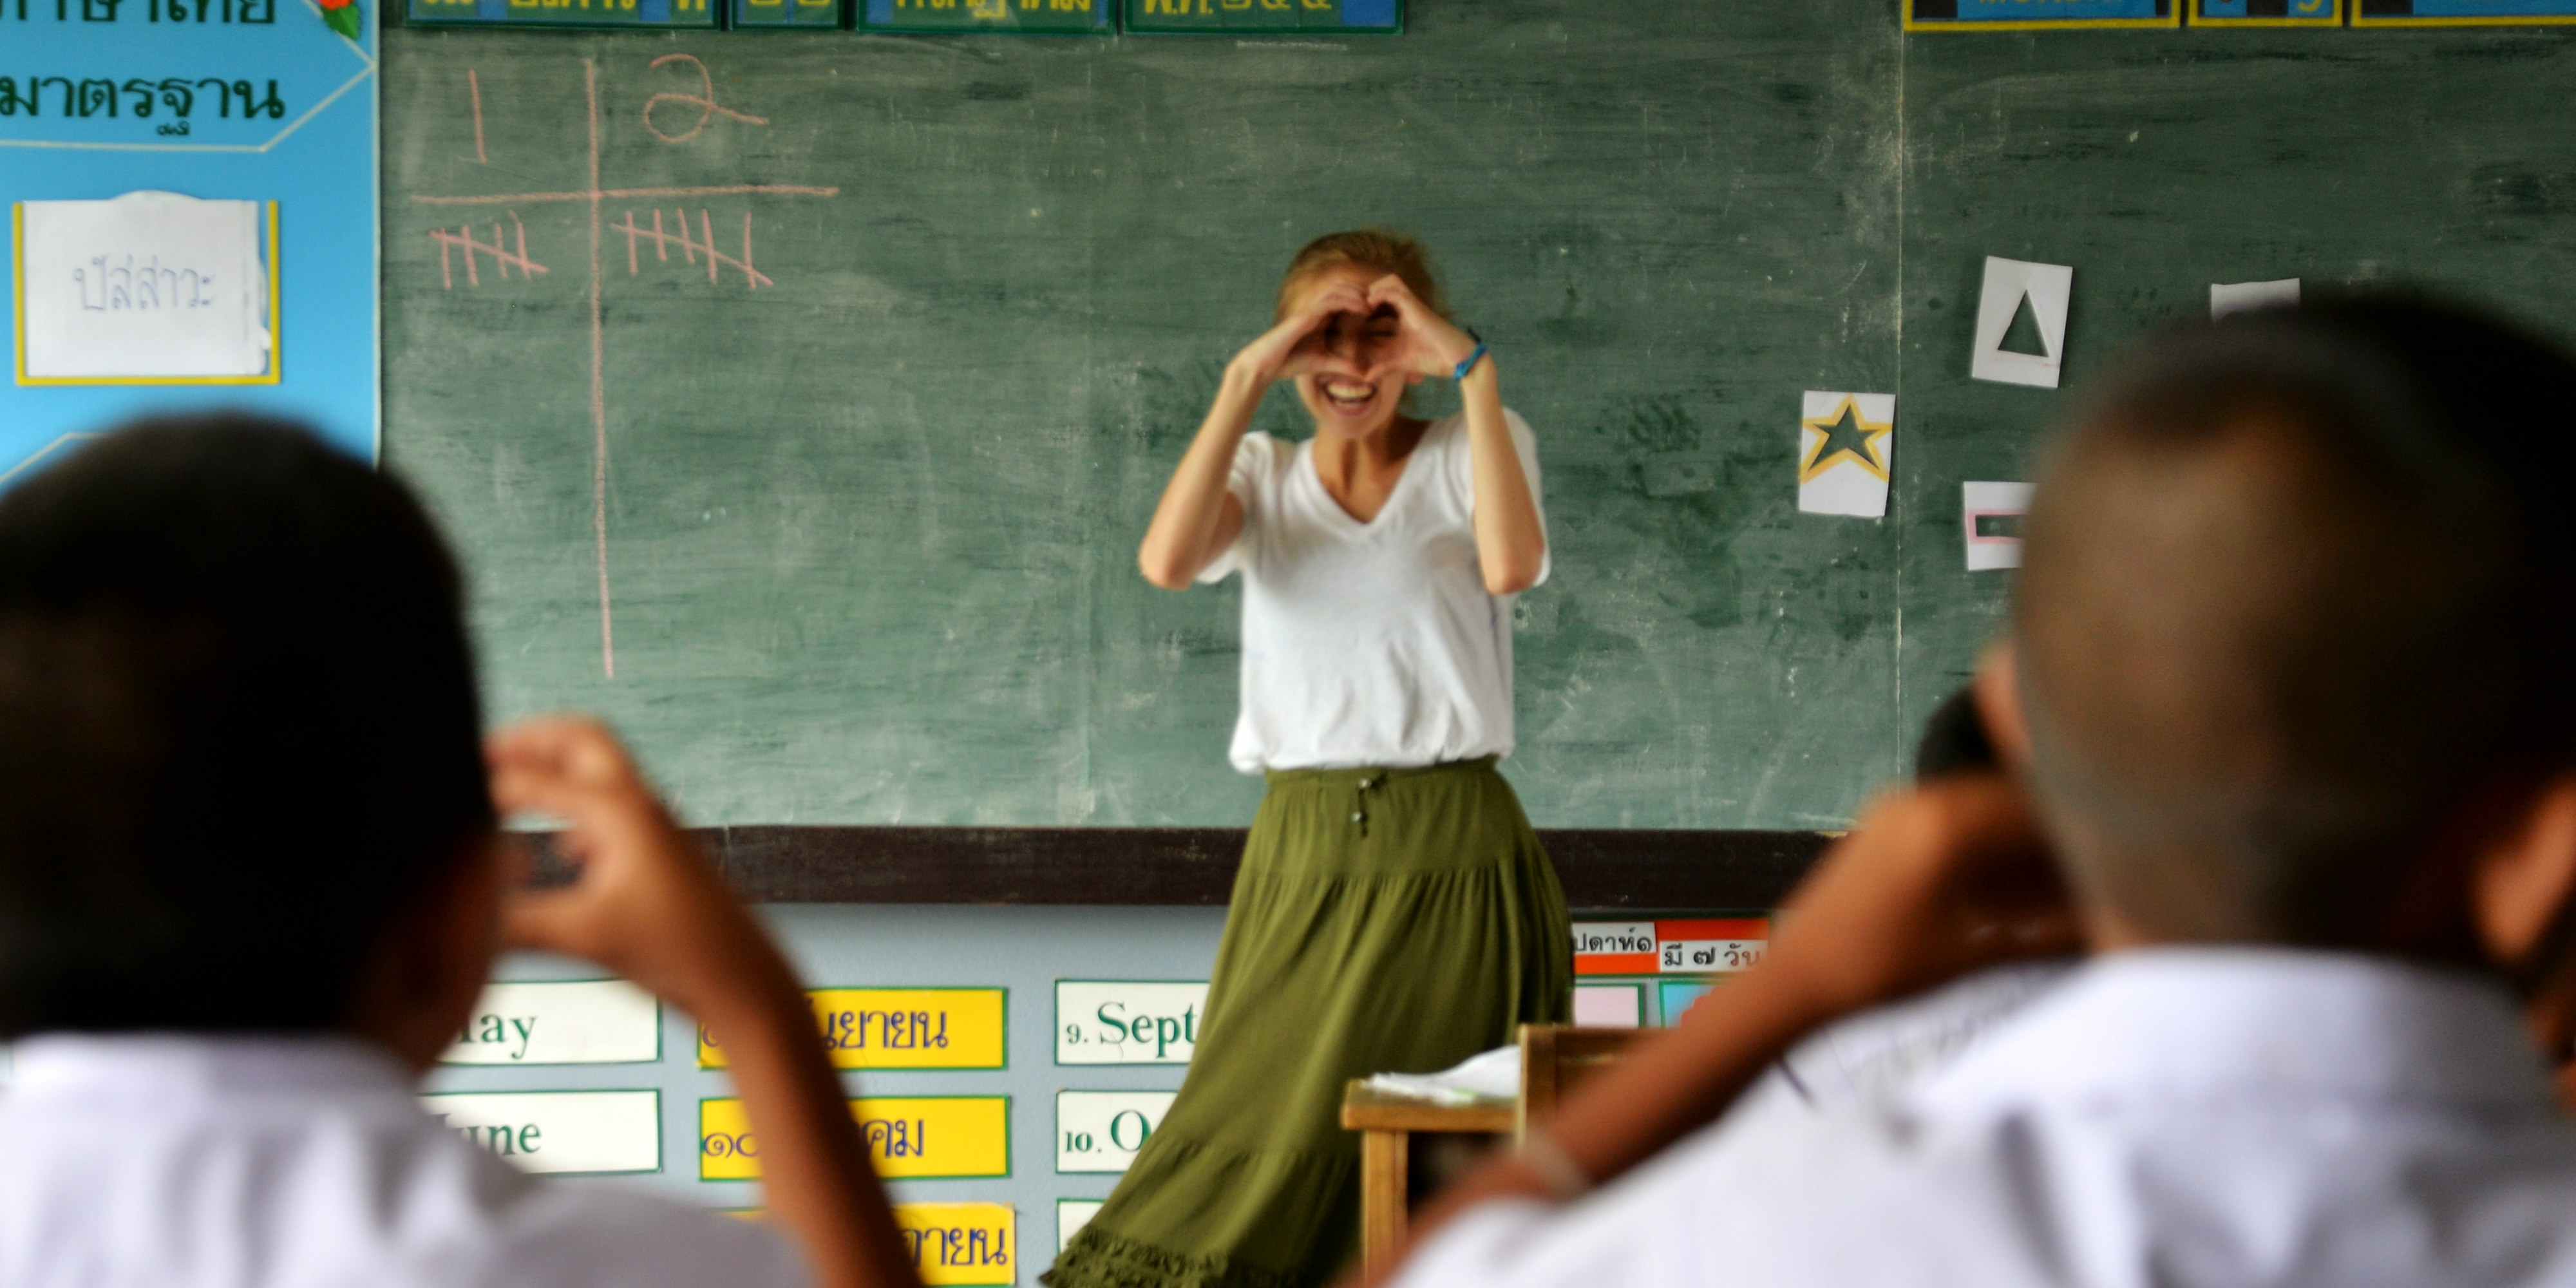 A volunteer puts their TEFL certification to good use in a lesson on shapes.